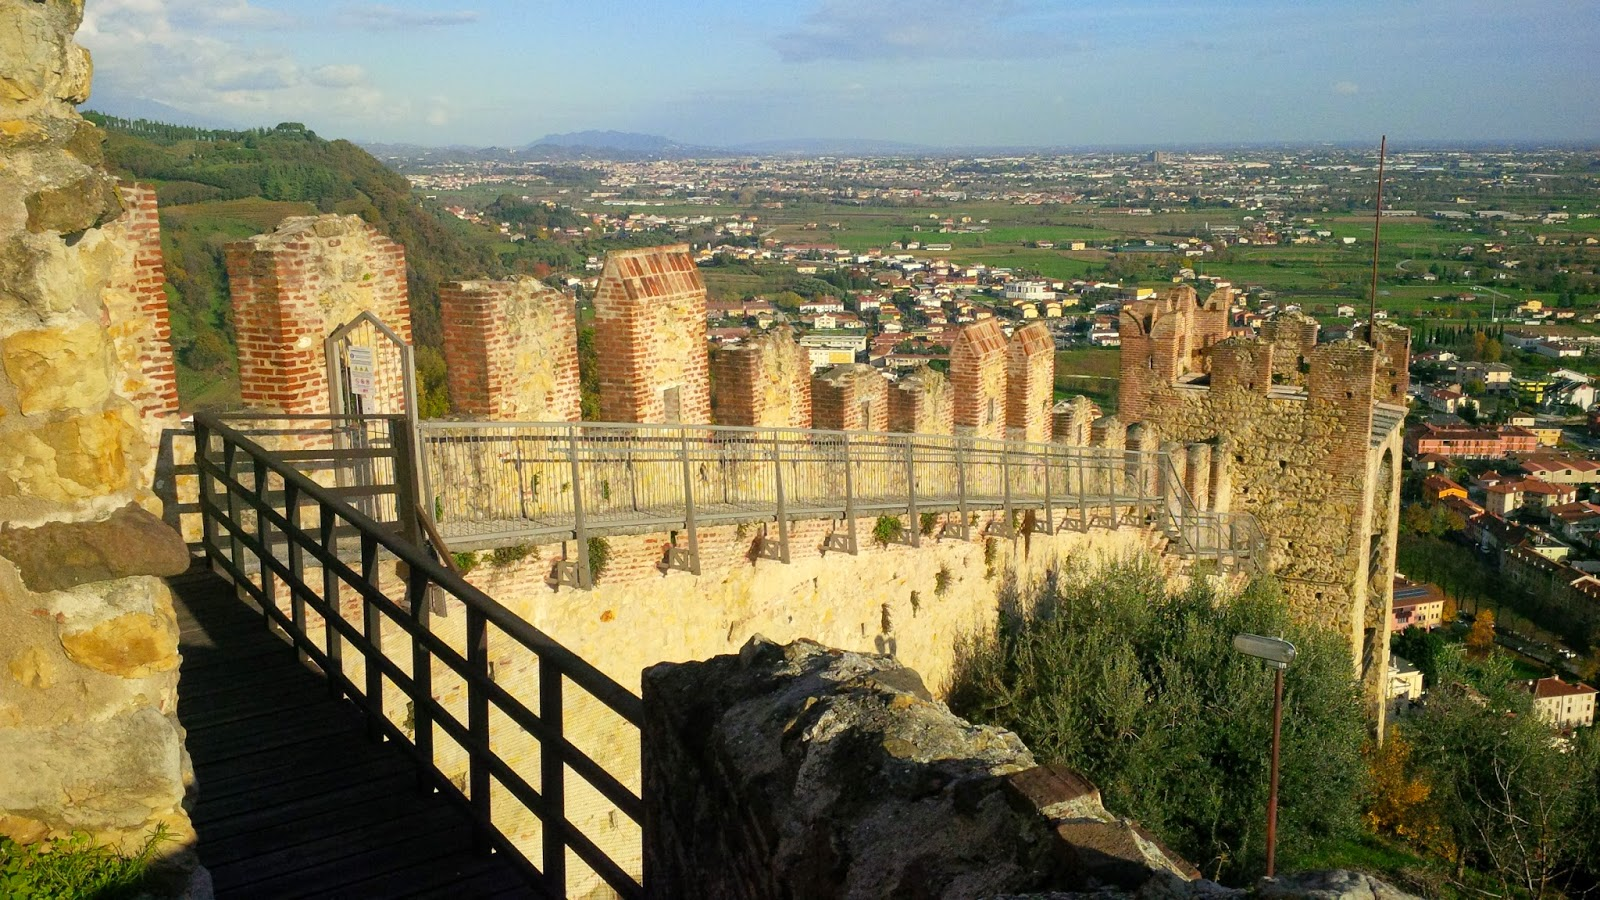 The defensive walls of Marostica - Veneto, Italy - www.rossiwrites.com